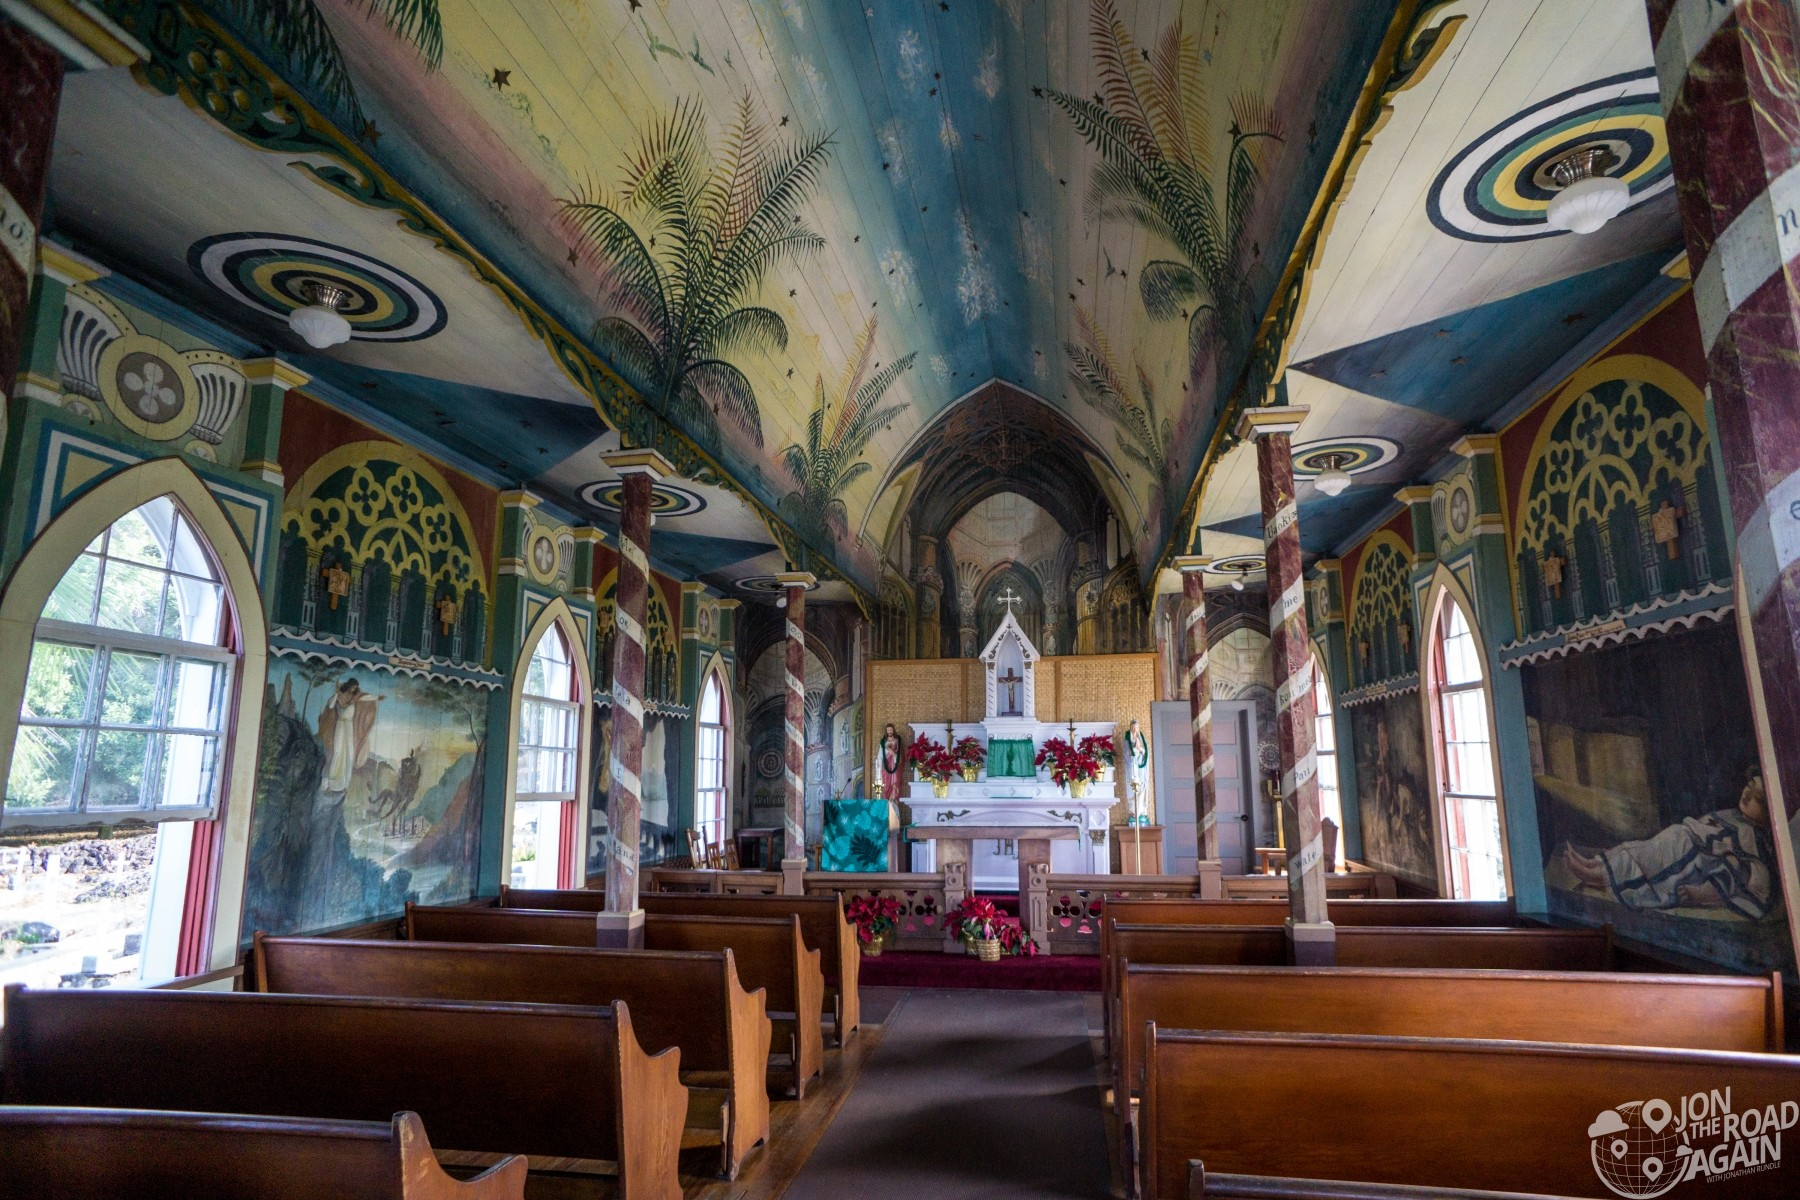 St. Benedict Painted Church Interior